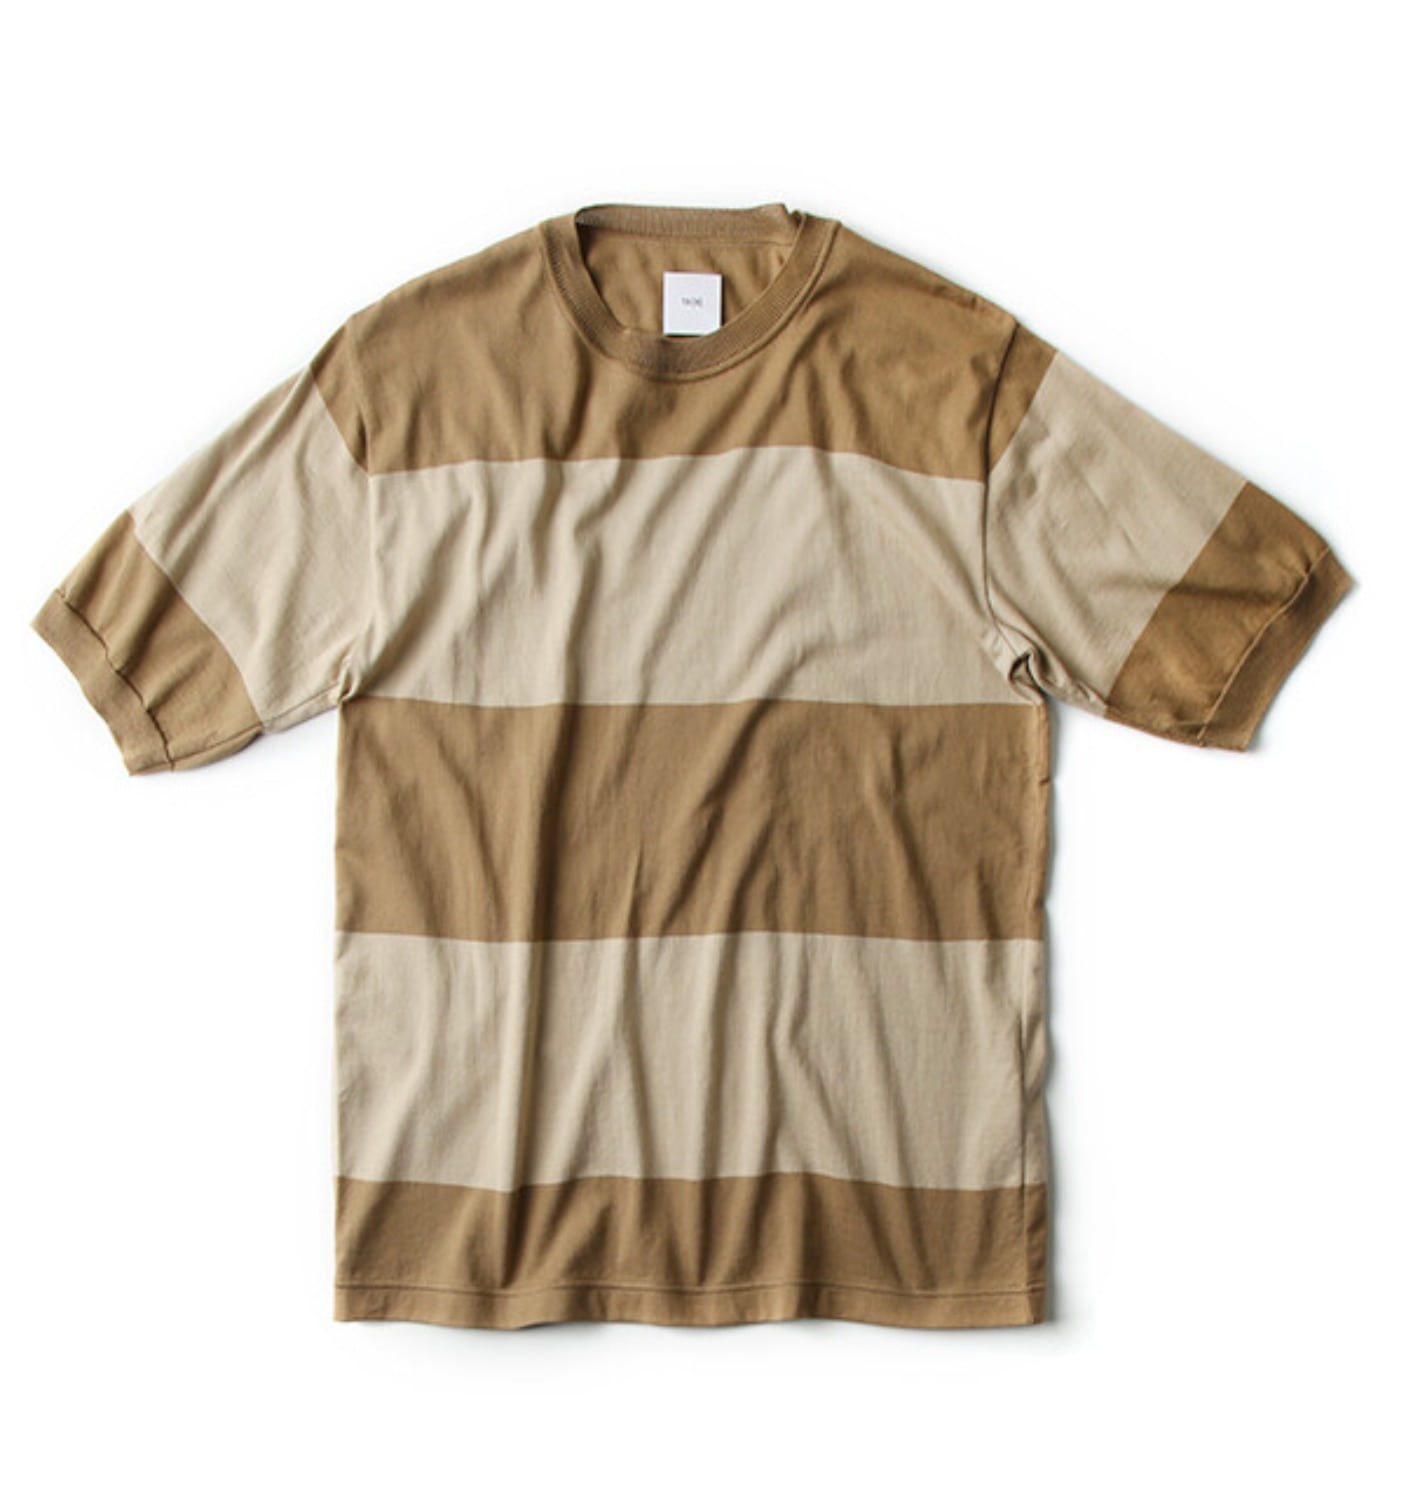 RIBBED SHORT SLEEVE T-SHIRT BEIGE(VT38XK01)